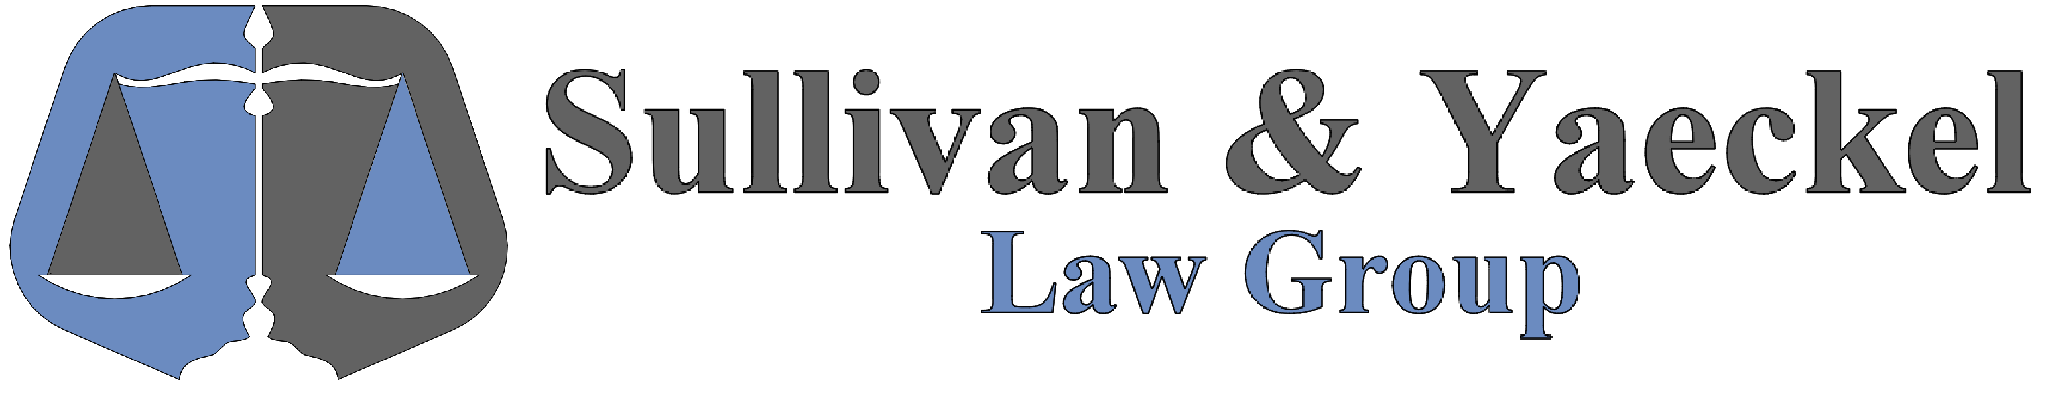 Sullivan Law Group